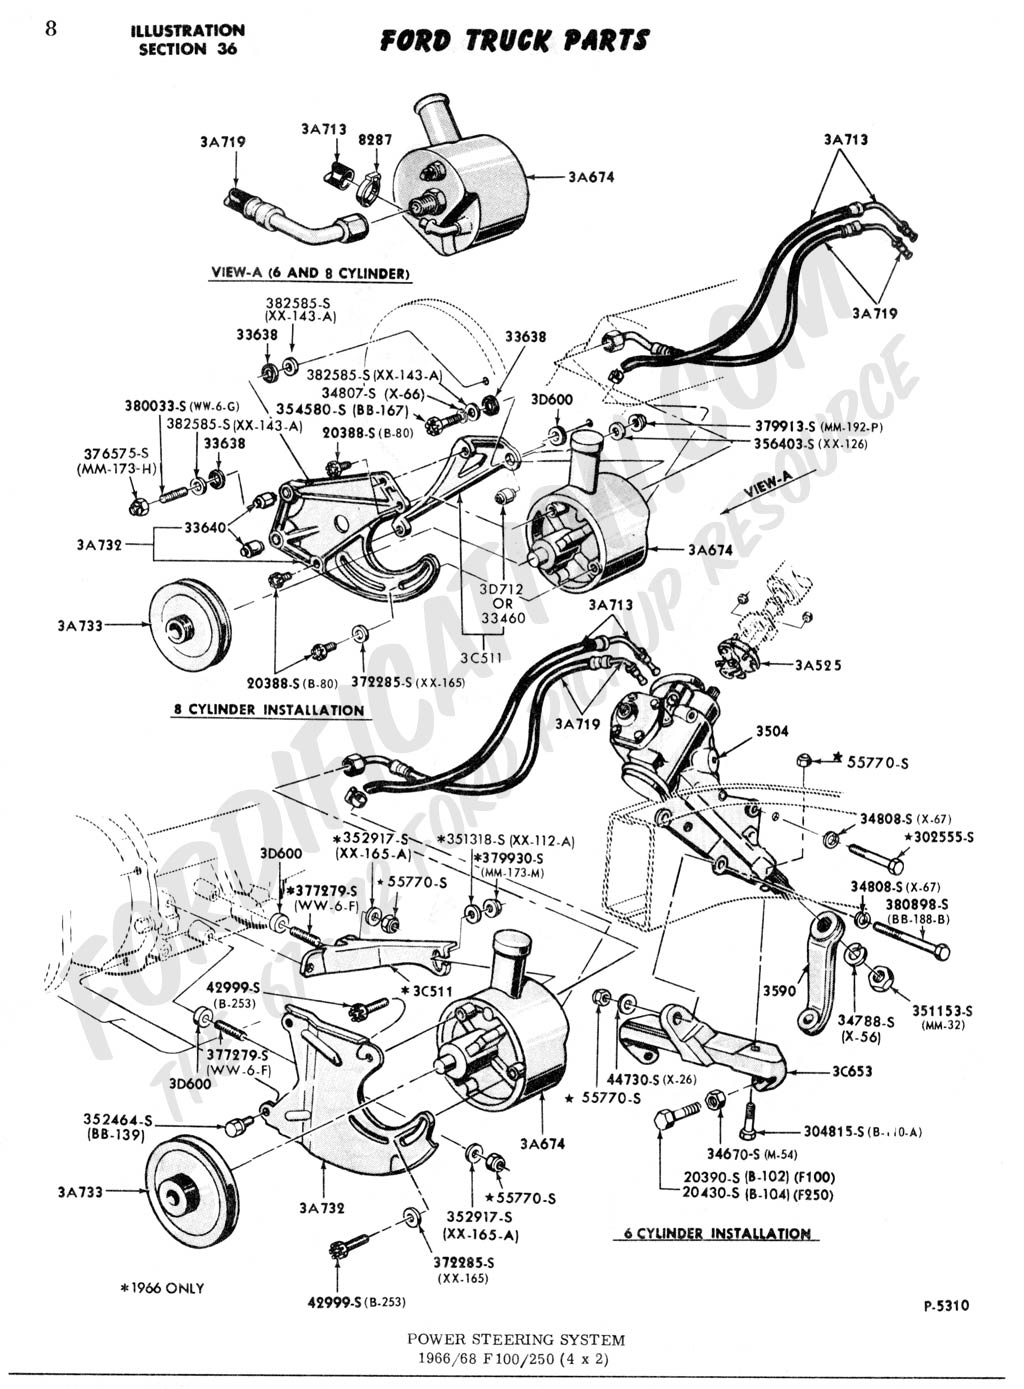 1970 chevelle steering diagram  diagrams  autosmoviles com